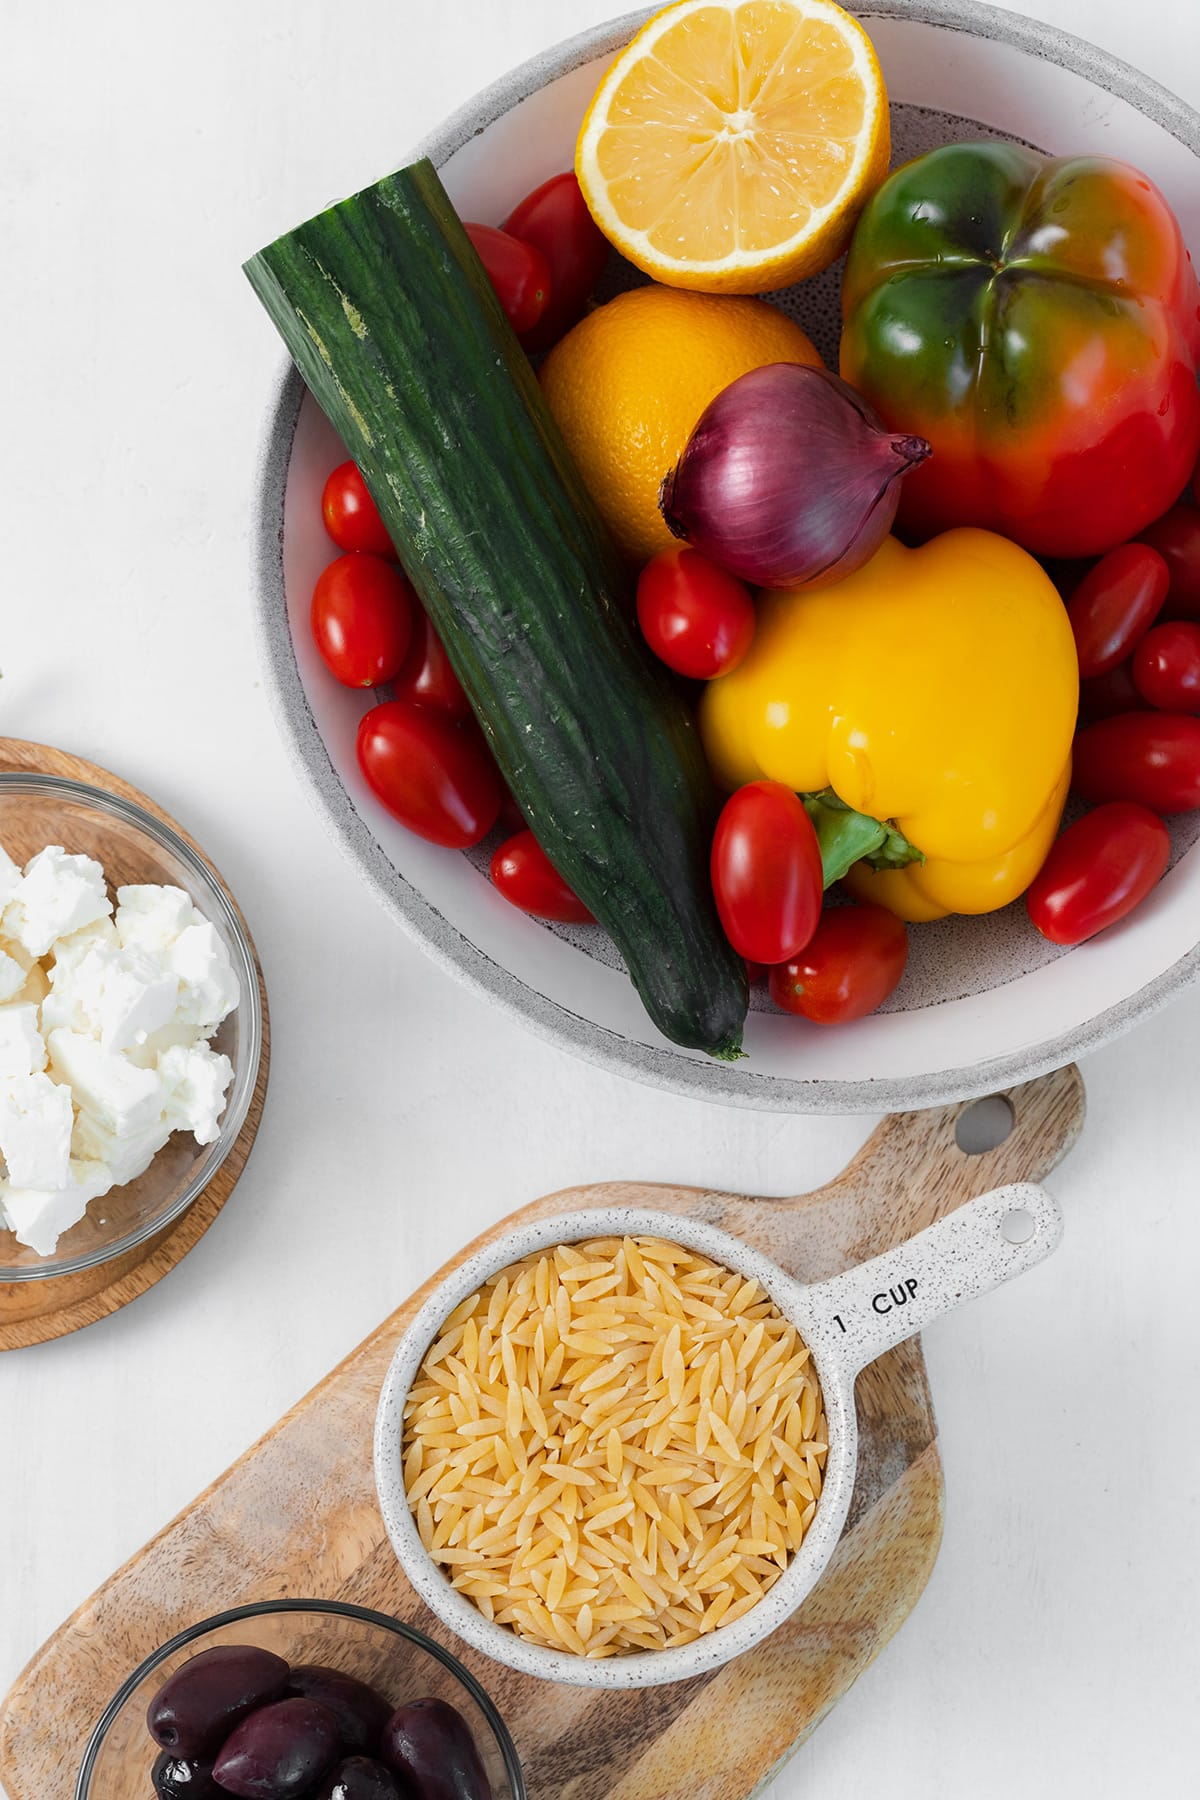 Ingredients for the orzo salad shown laid out on a white background. Cucumber, tomatoes, bell peppers, lemons, feta cheese, orzo, and red onion.